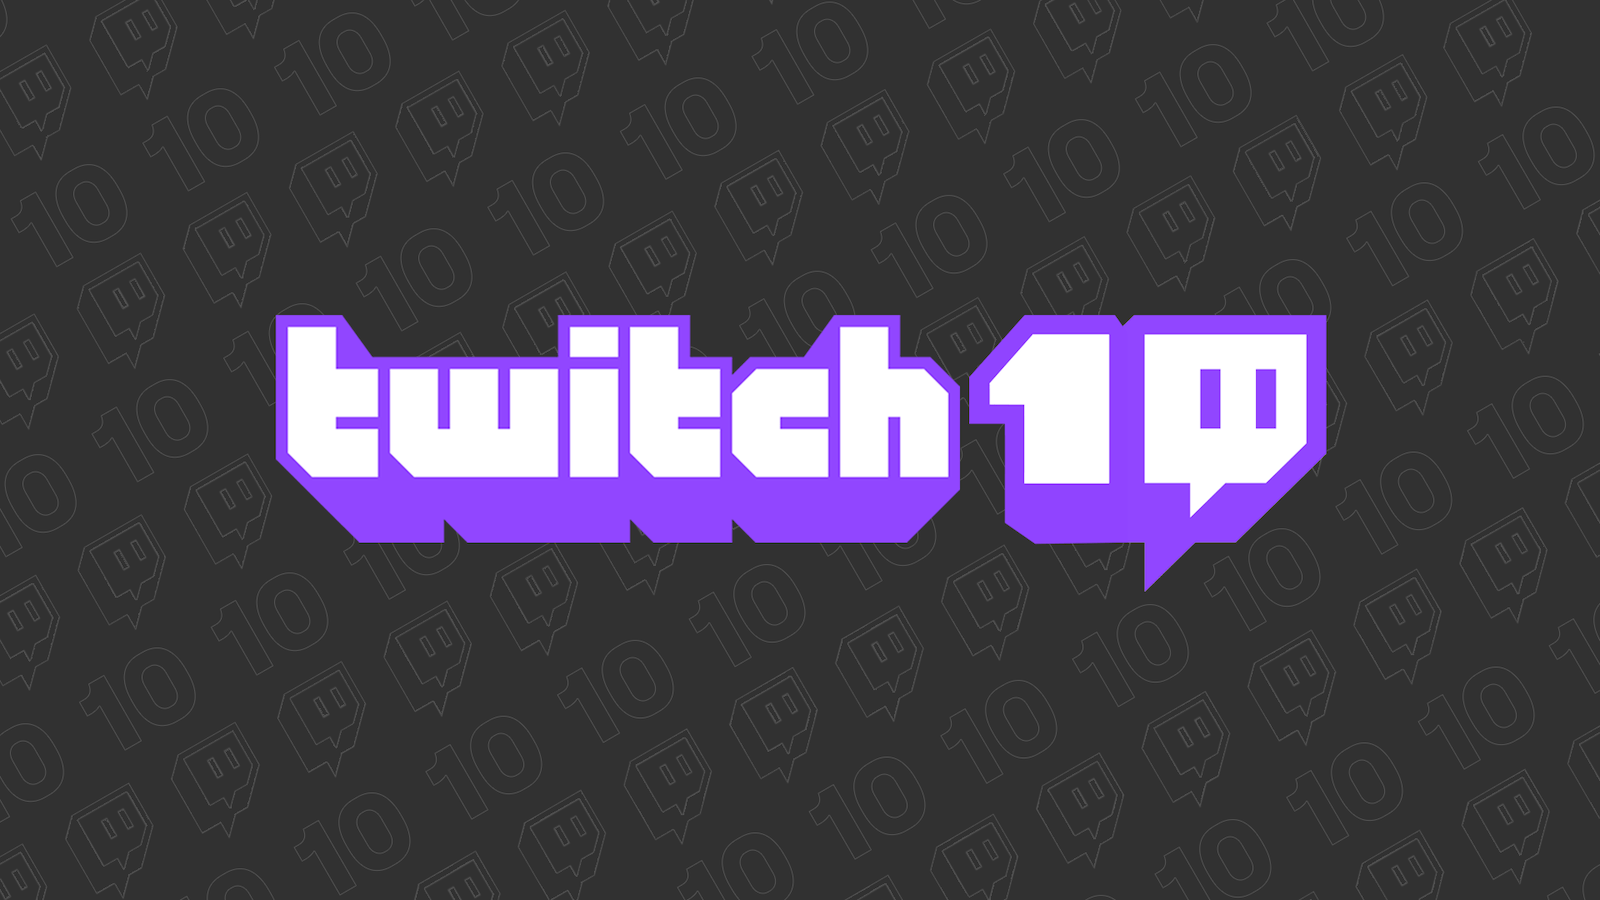 10 years of Twitch: Looking back on the top games